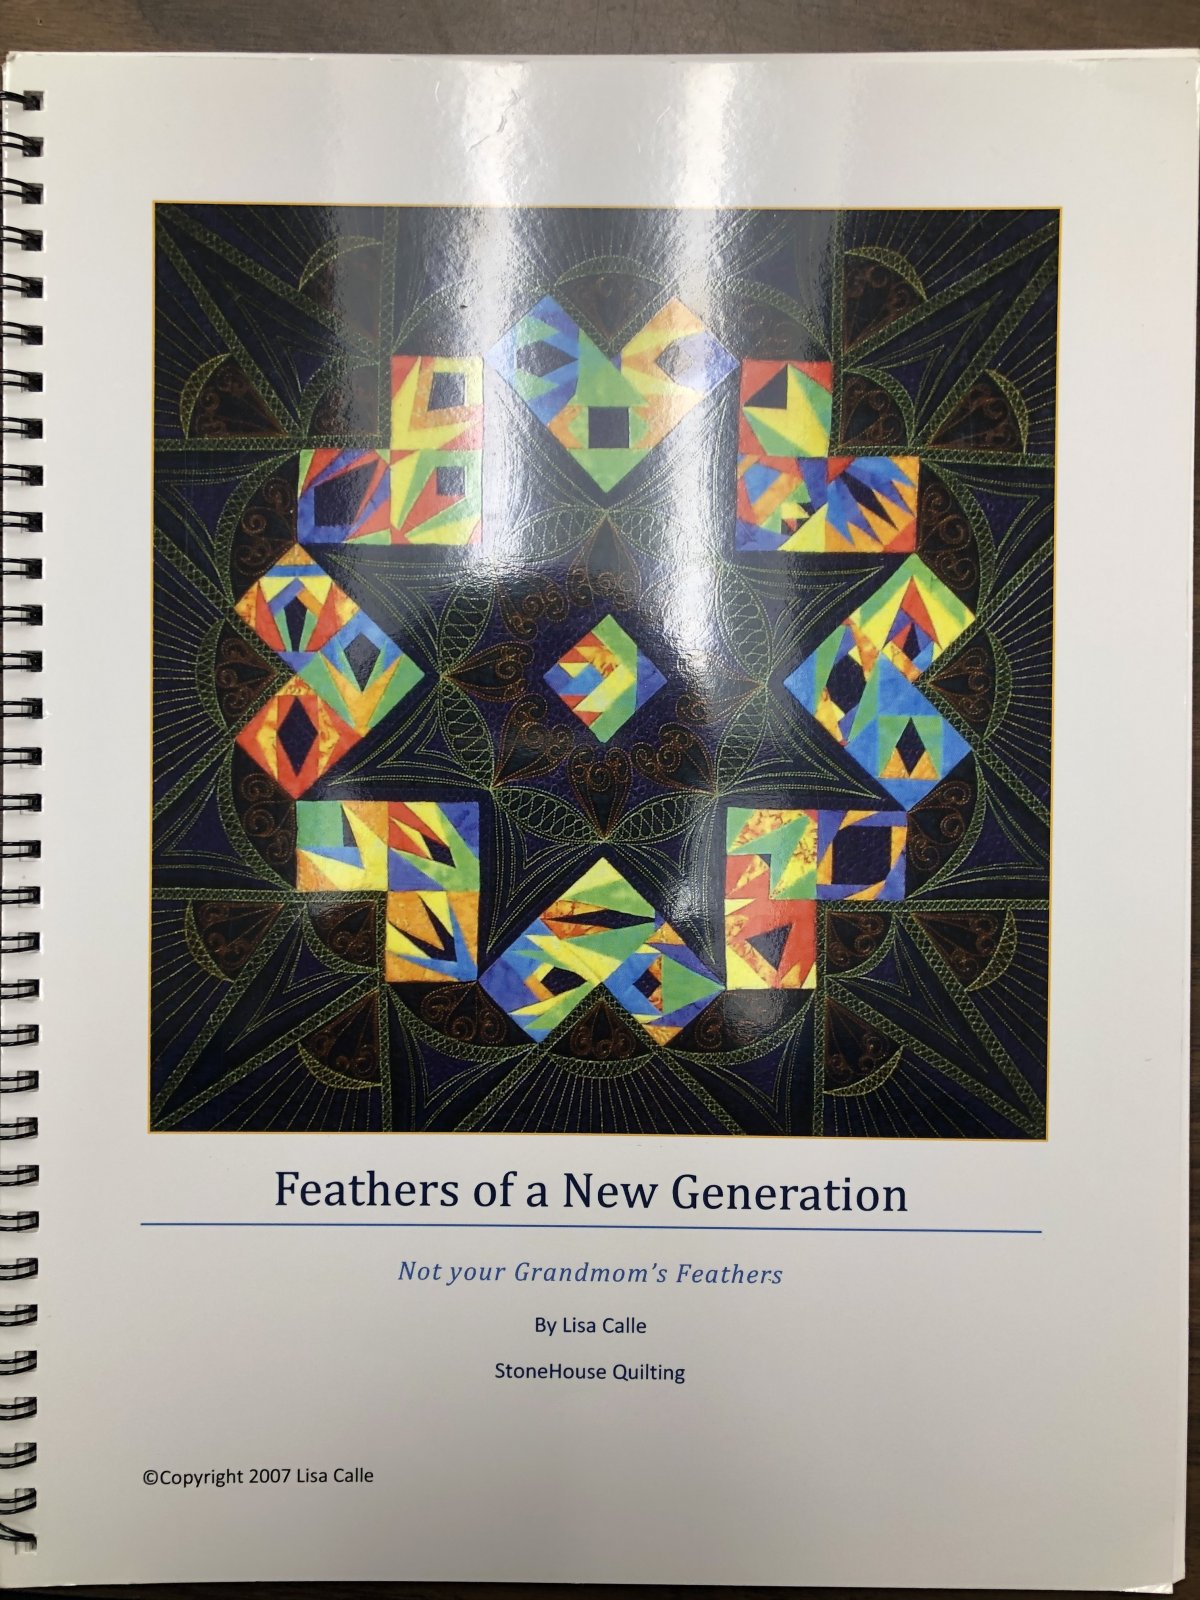 Feathers of a New Generation